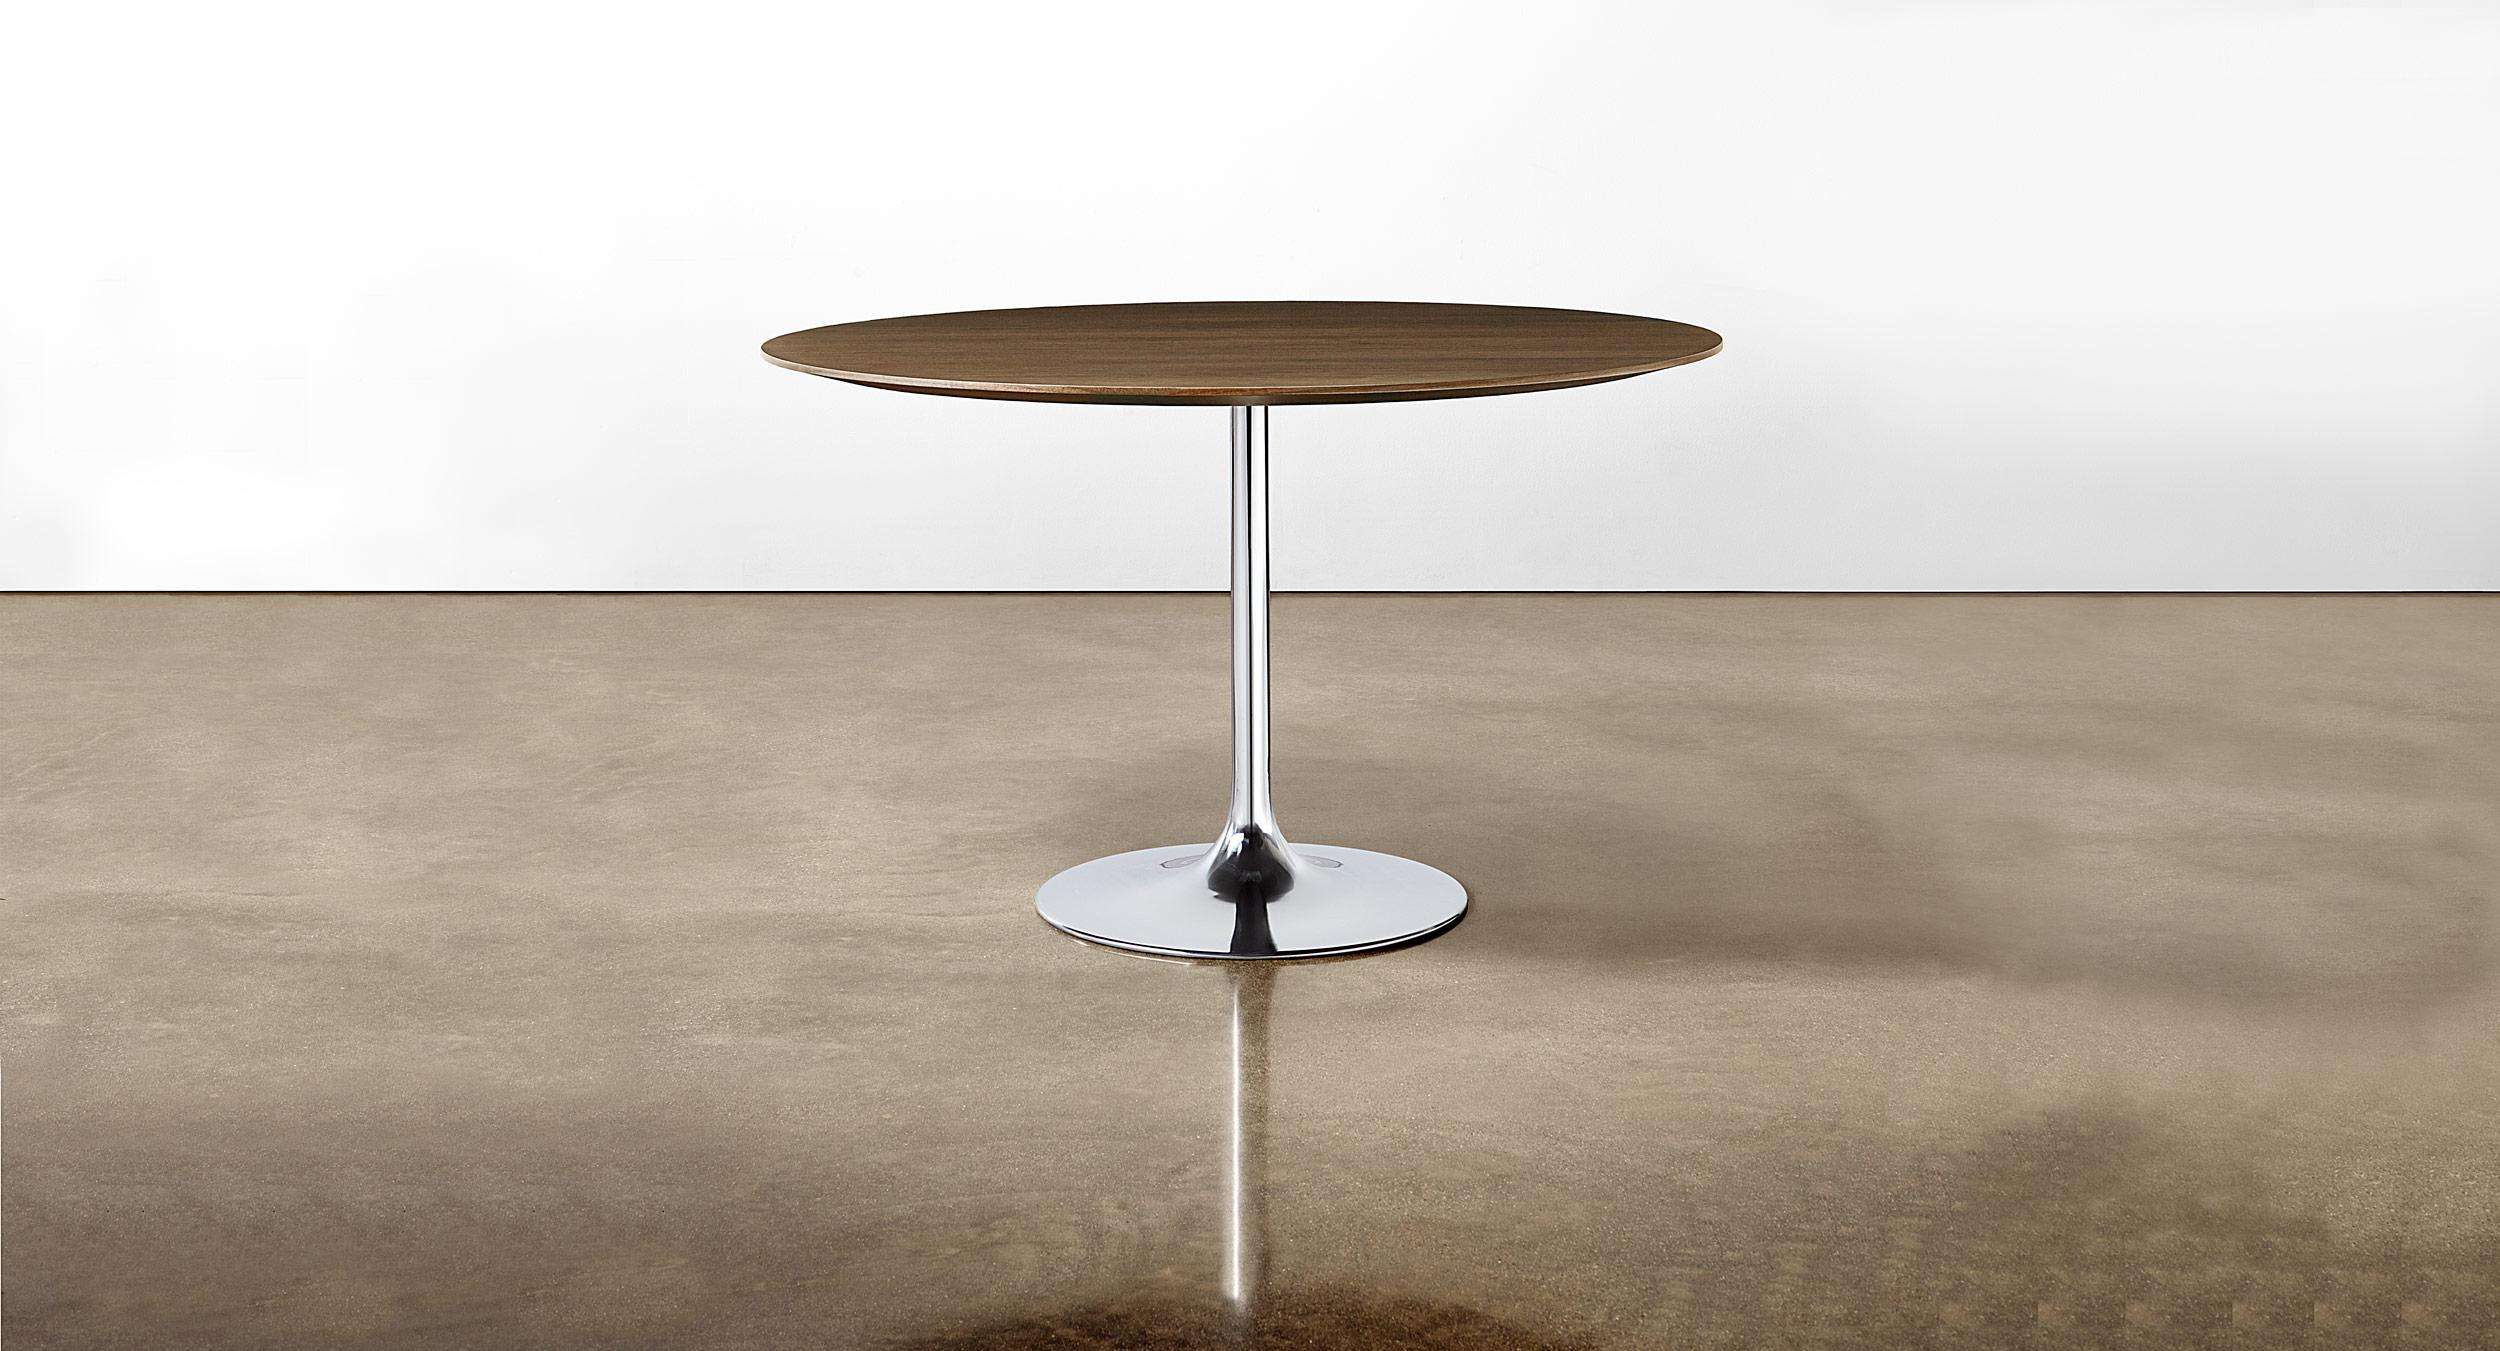 Sessions table with sculptural Trumpet base